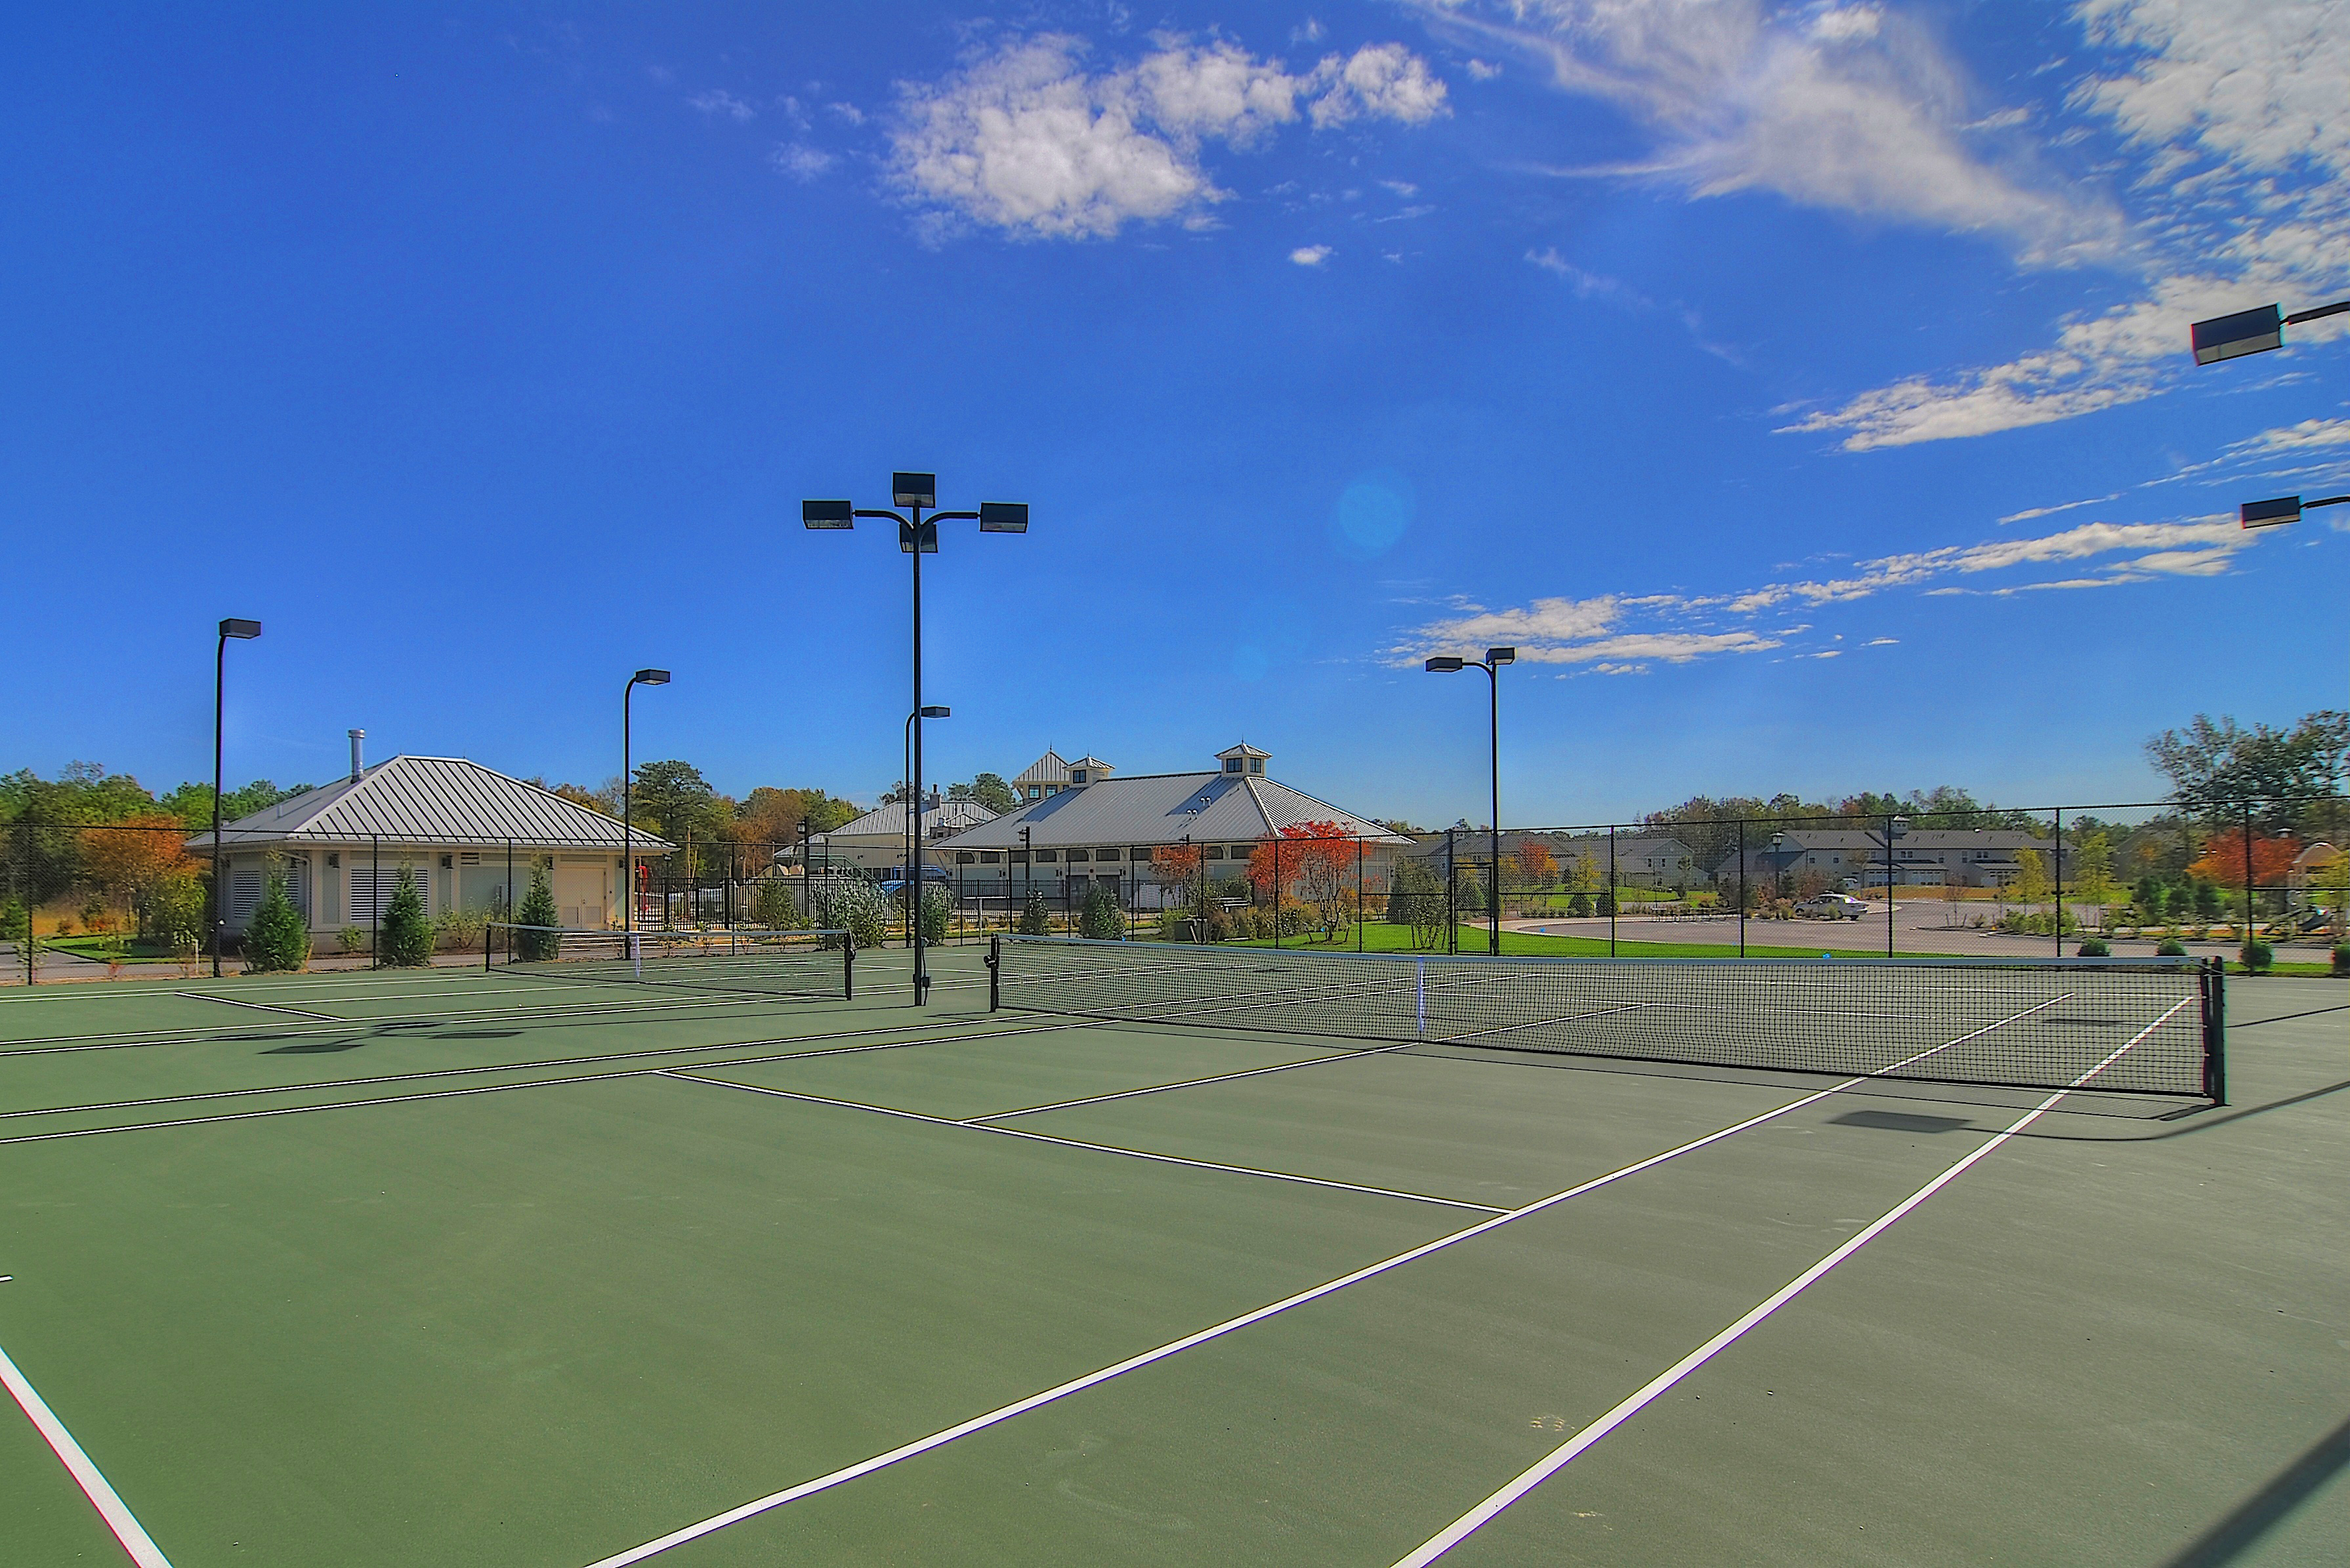 4 Tennis courts, a sand pit for volleyball, bocci ball, pickleball and horseshoe pits guarantee you'll always have something to do